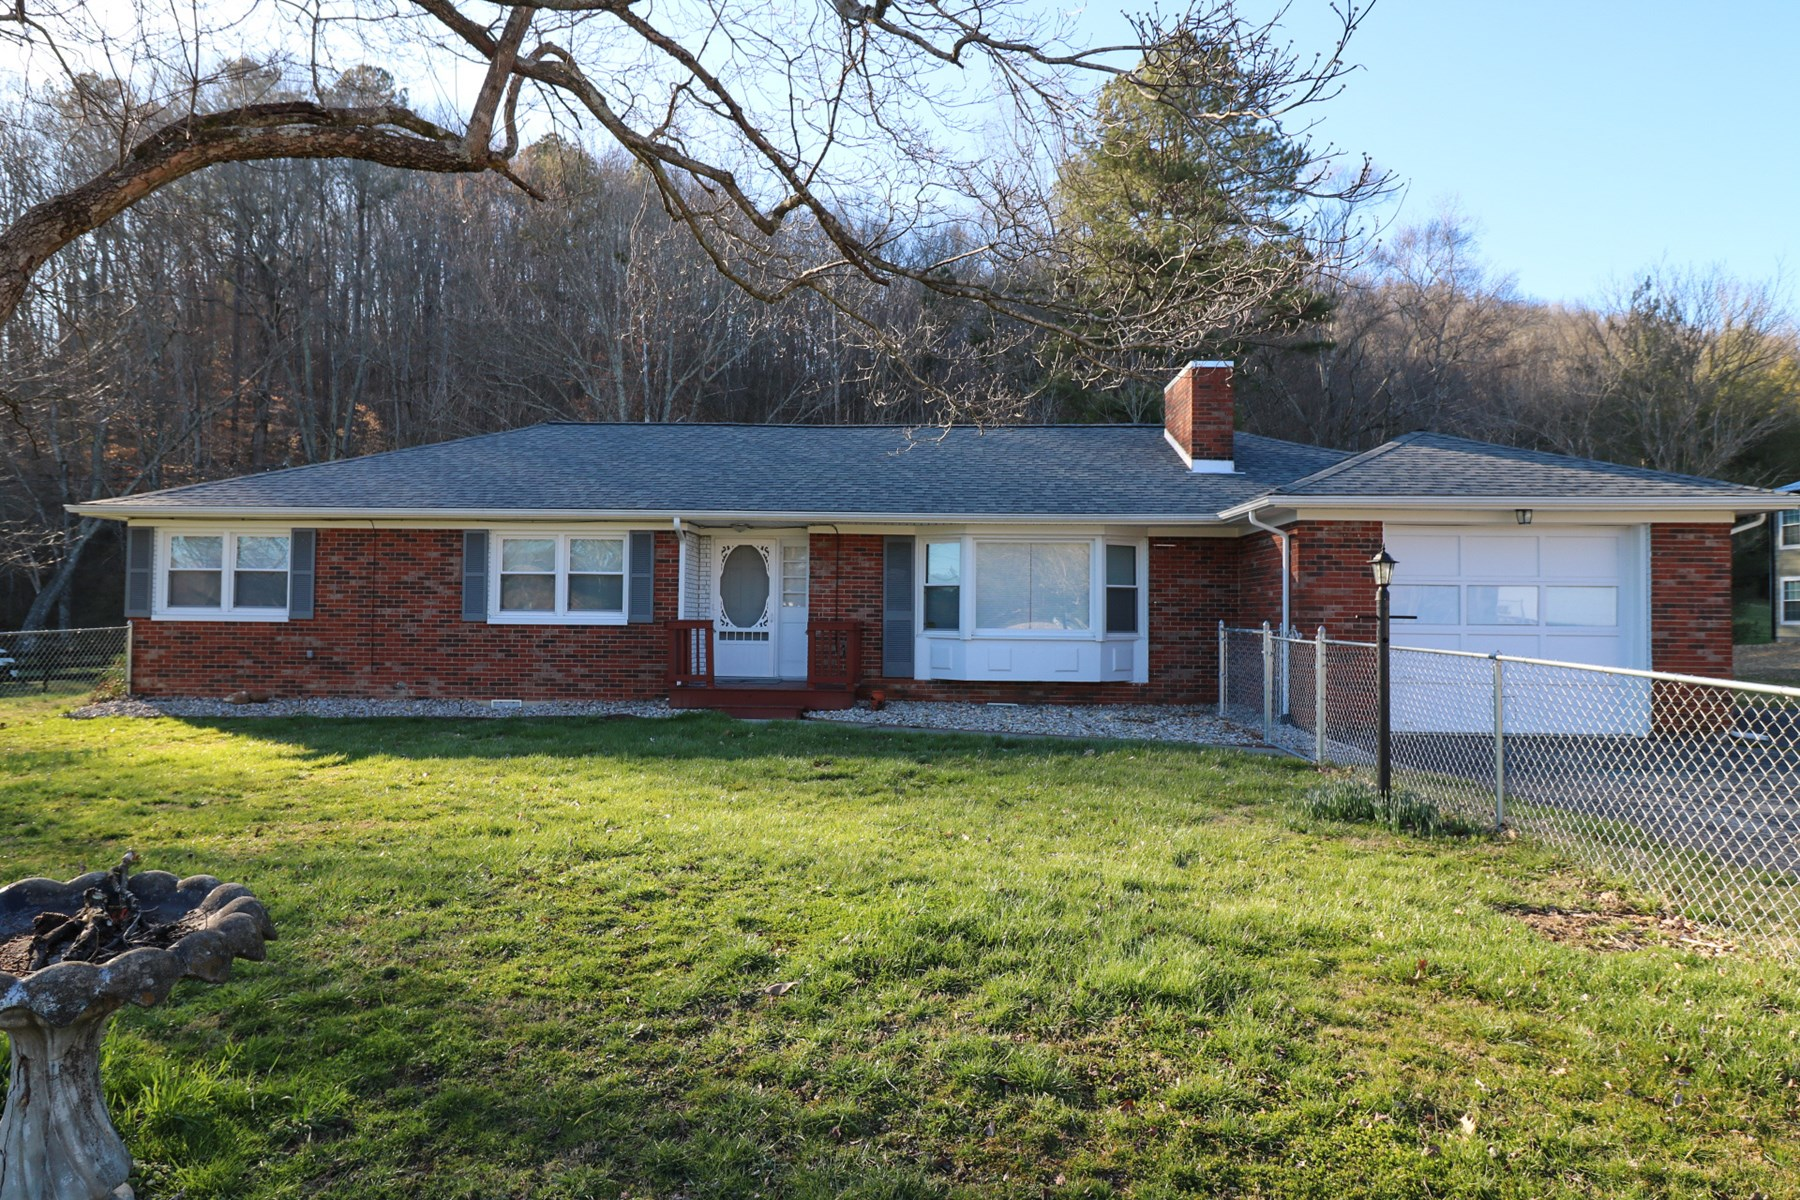 Home in town for sale in Liberty Kentucky